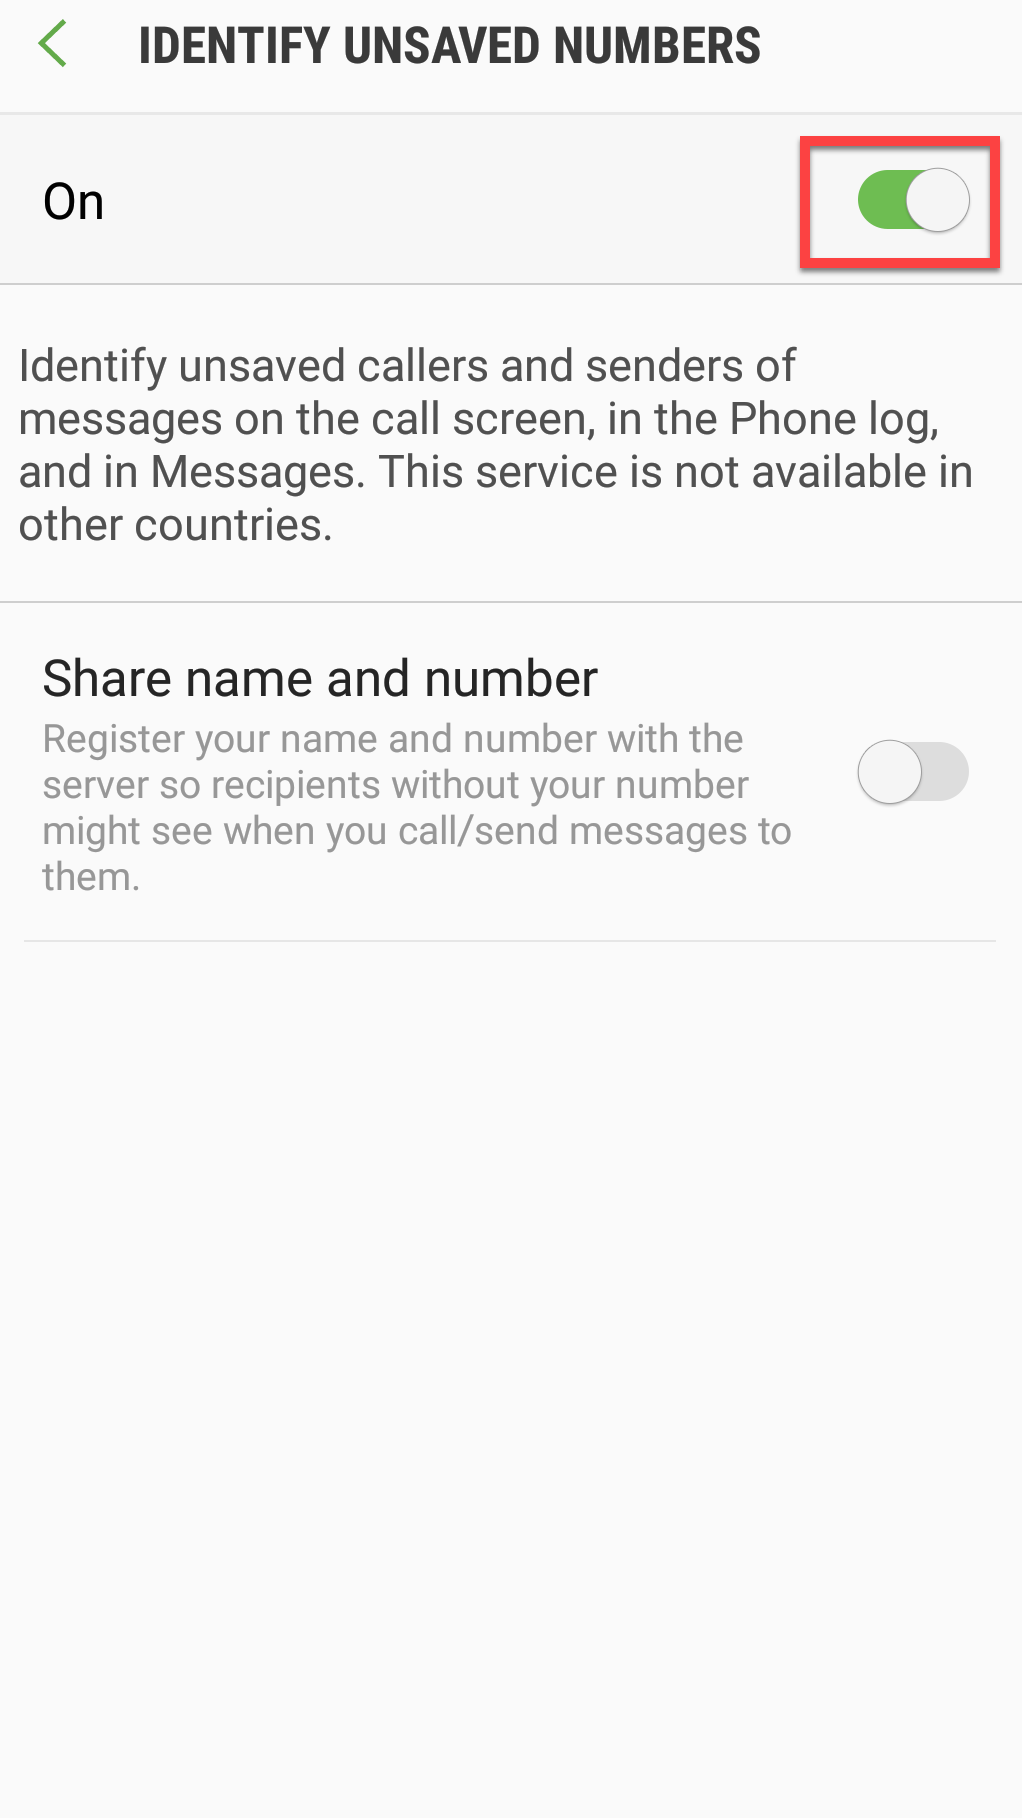 Identify unsaved numbers